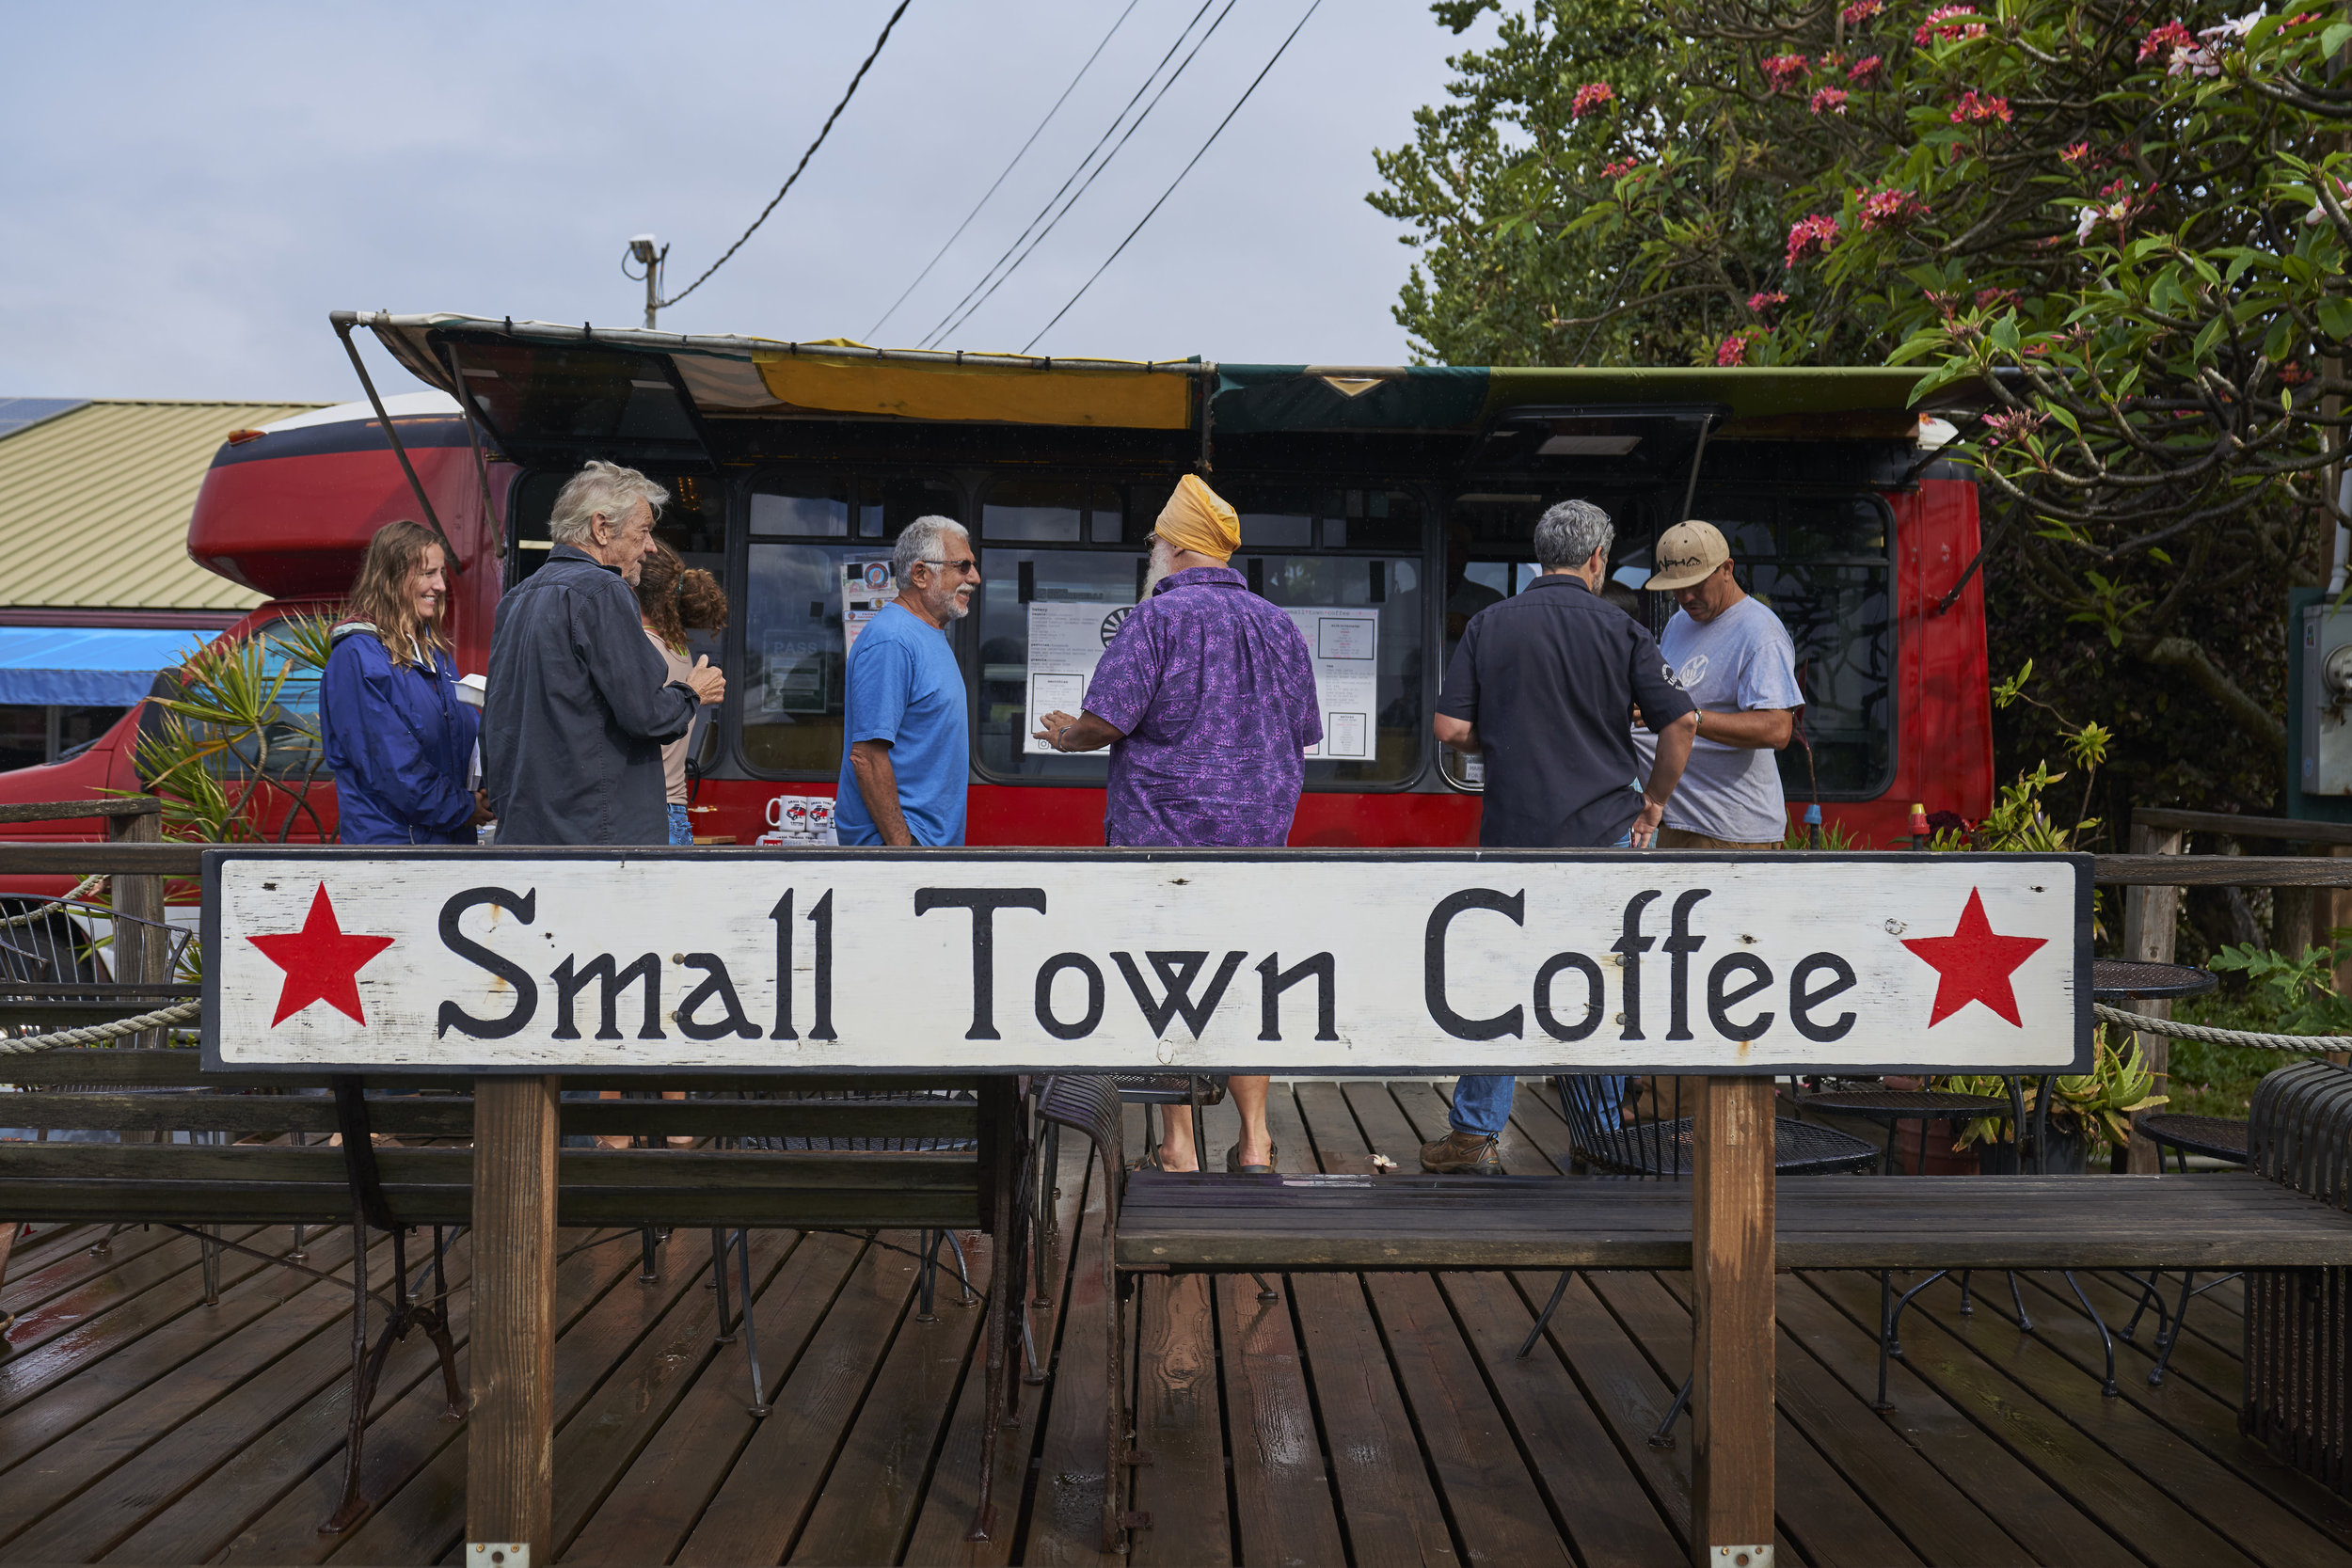 Small_Town_Coffee 25.jpg